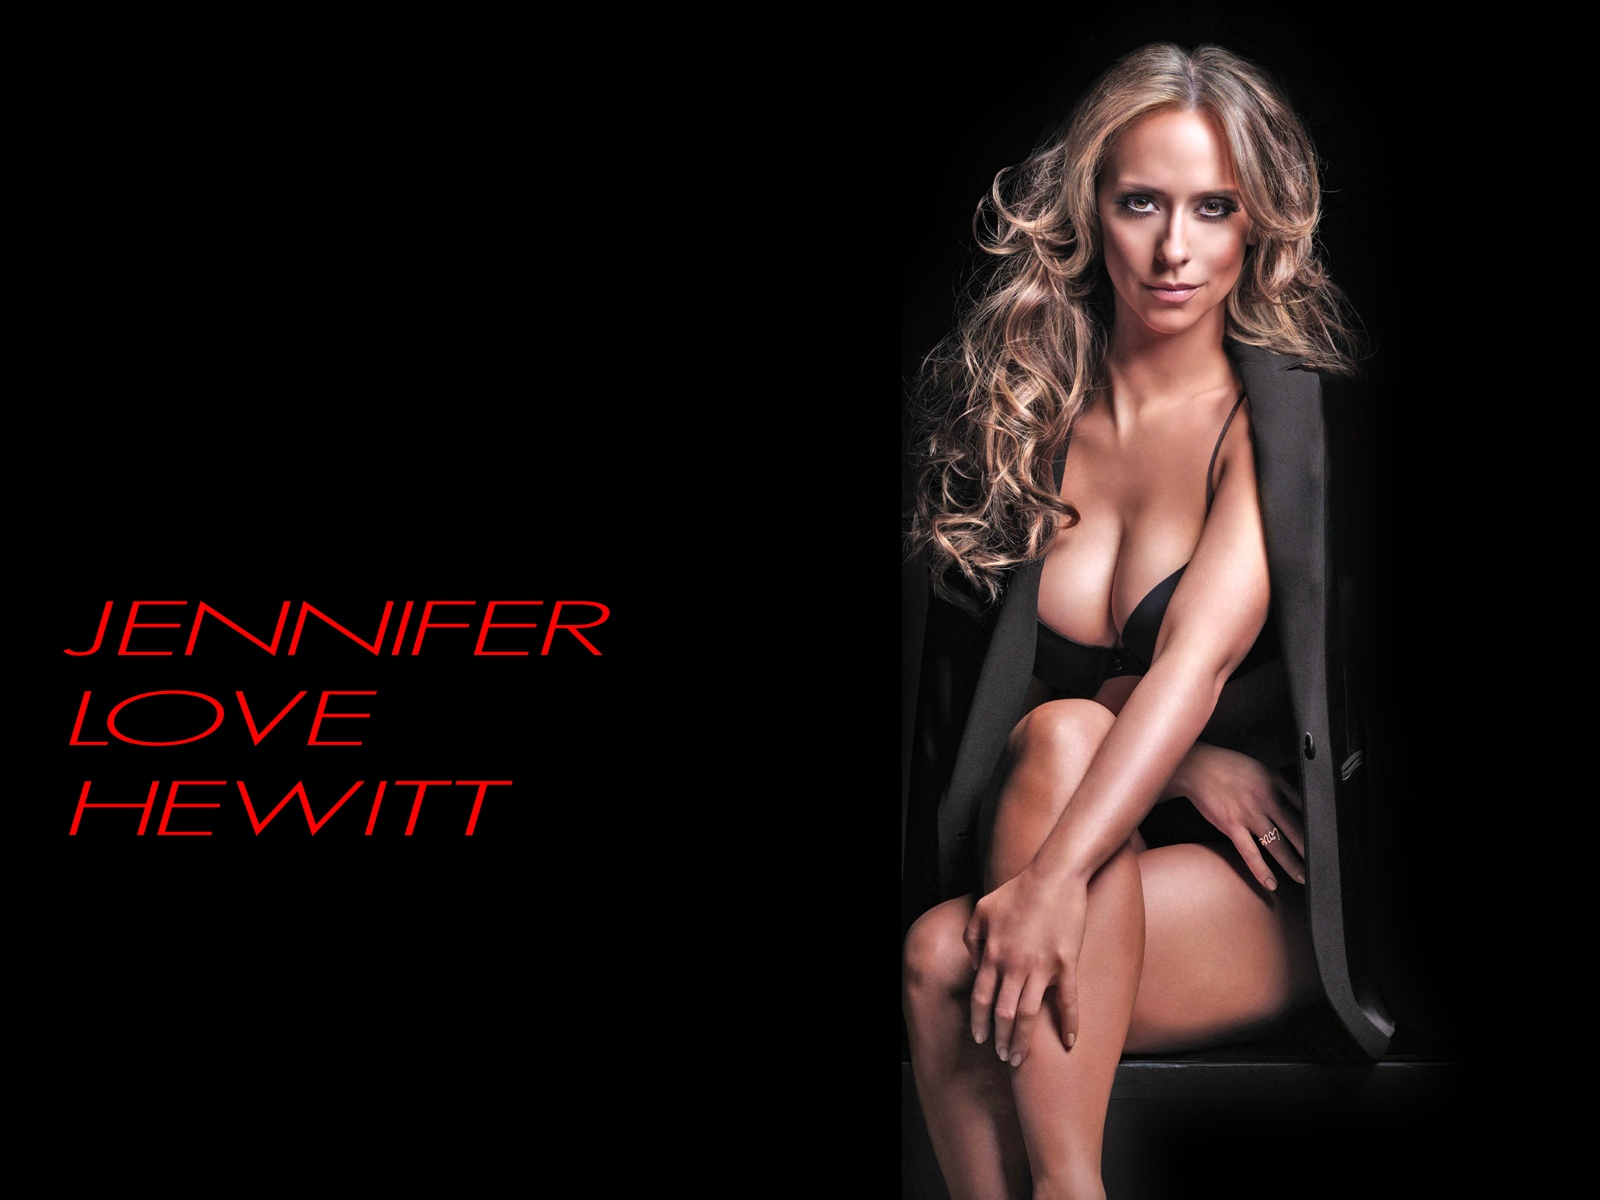 Wallpaper Of Hot Love : Jennifer Love Hewitt Hot and Sexy Wallpapers 1600 and 1920-02 - Gotceleb